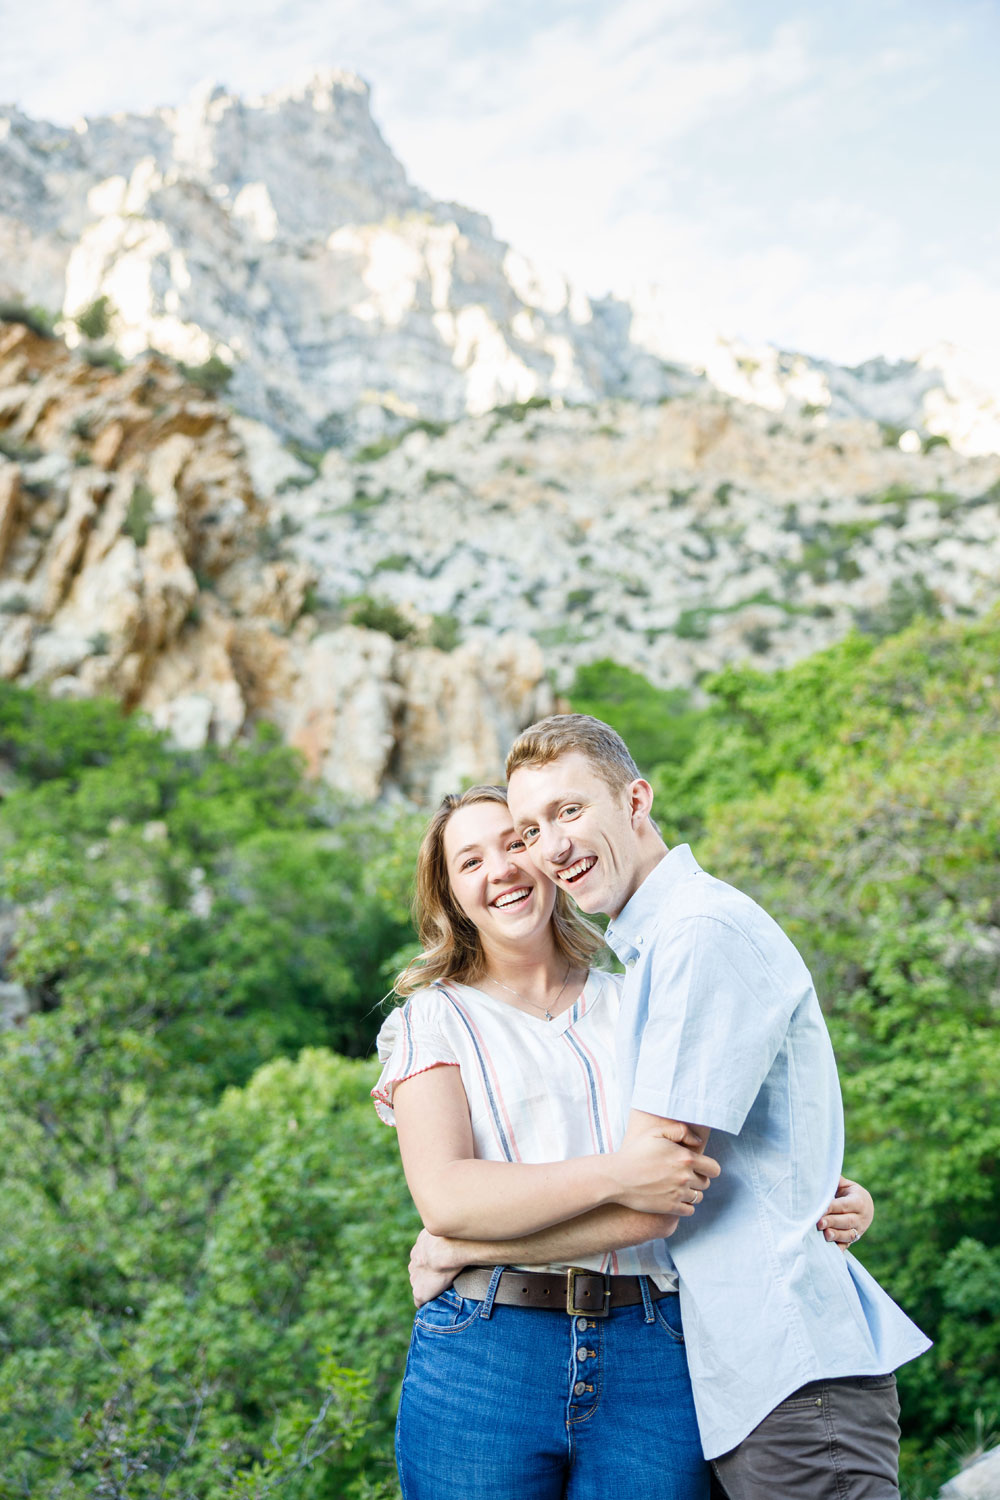 Rock Canyon and Engagements